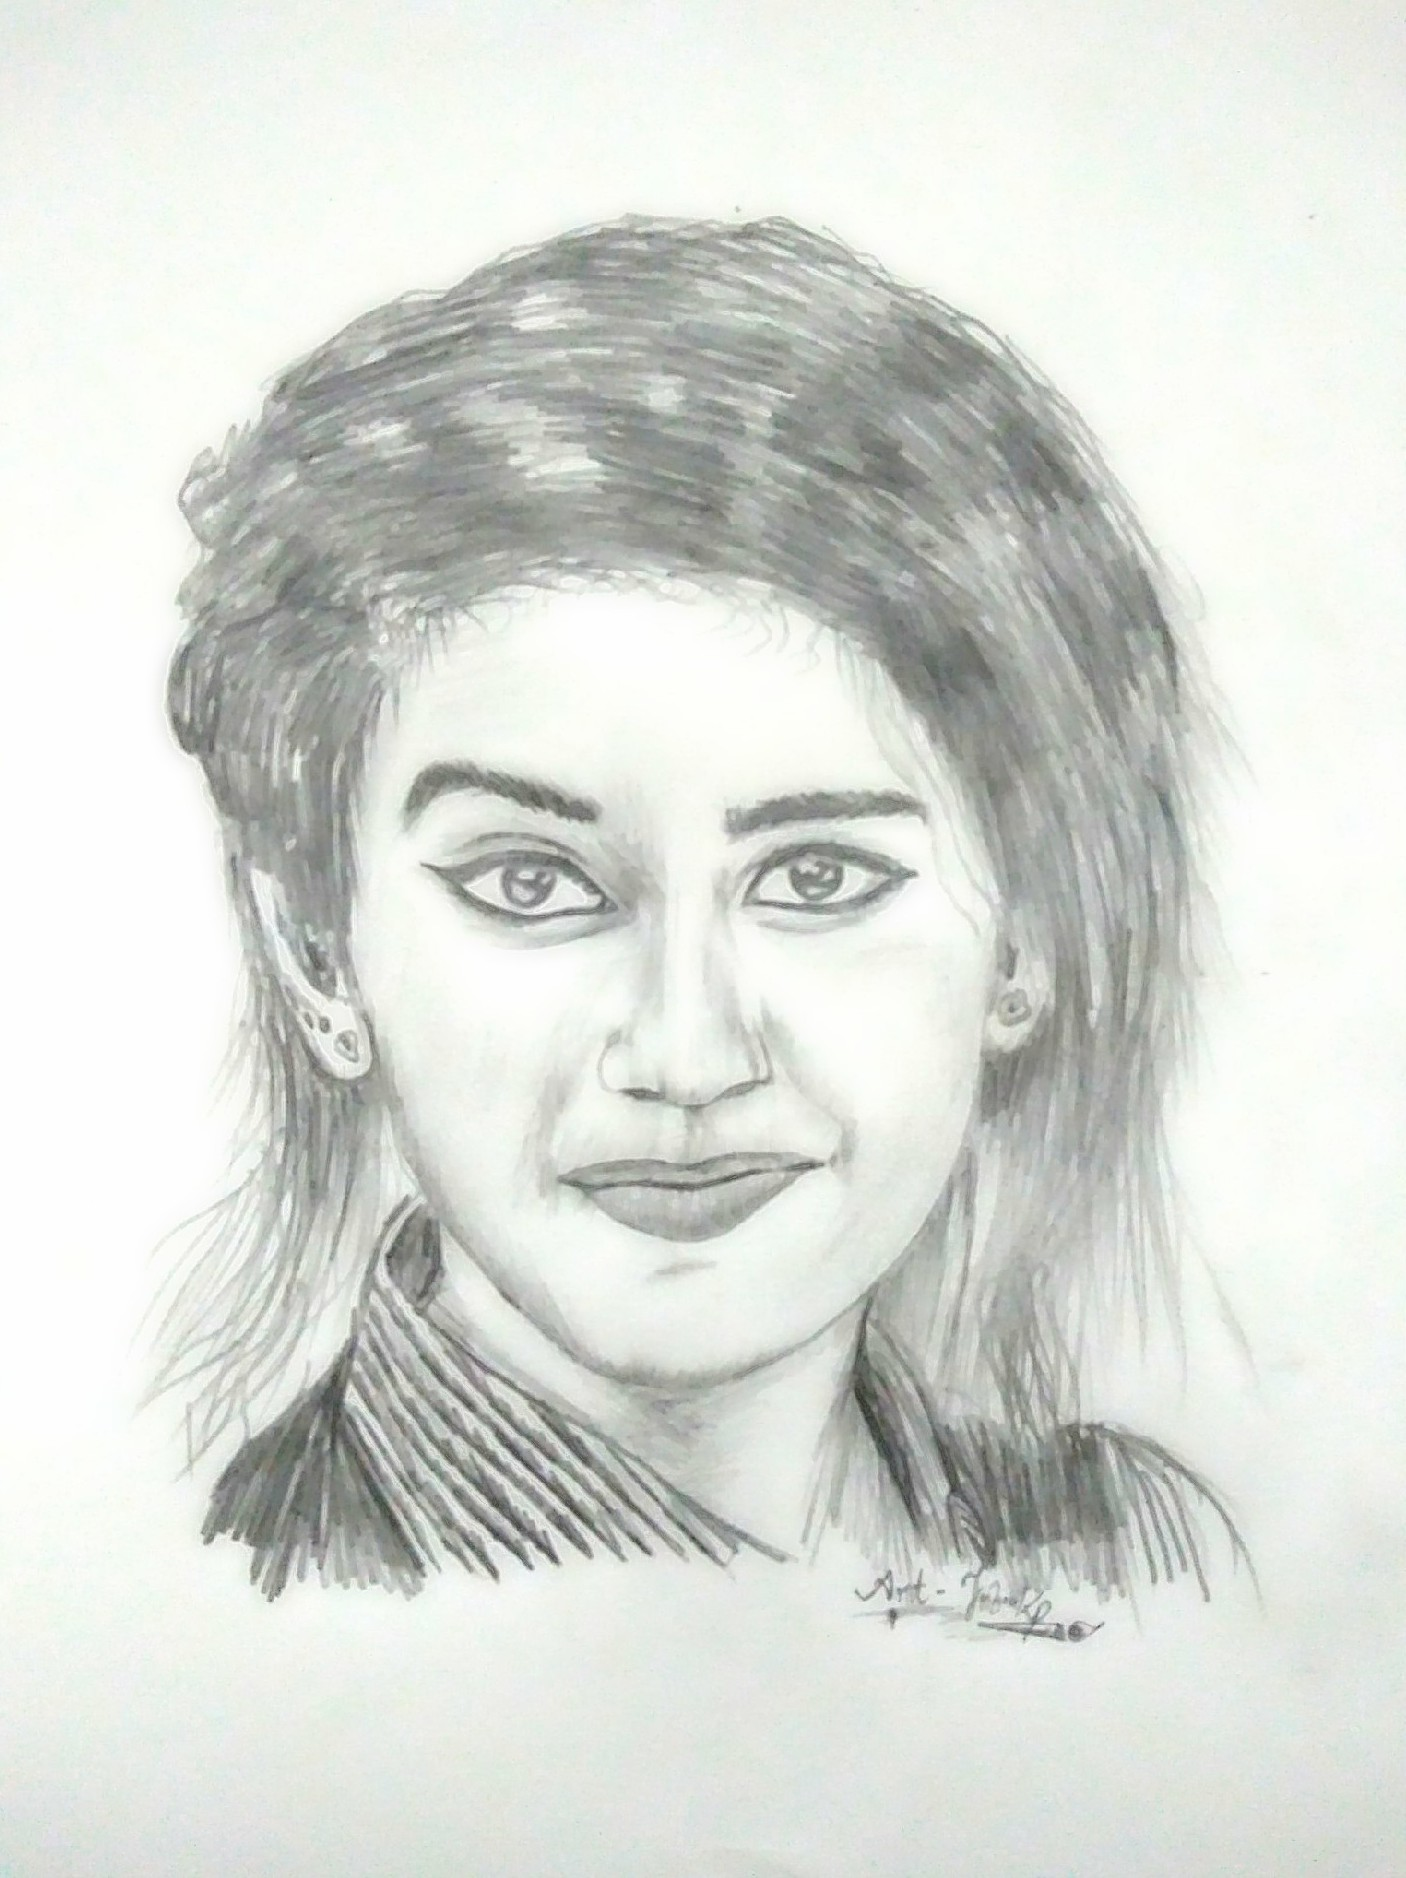 File:Priya prakash varrier's pencil drawing.jpg - Wikimedia Commons